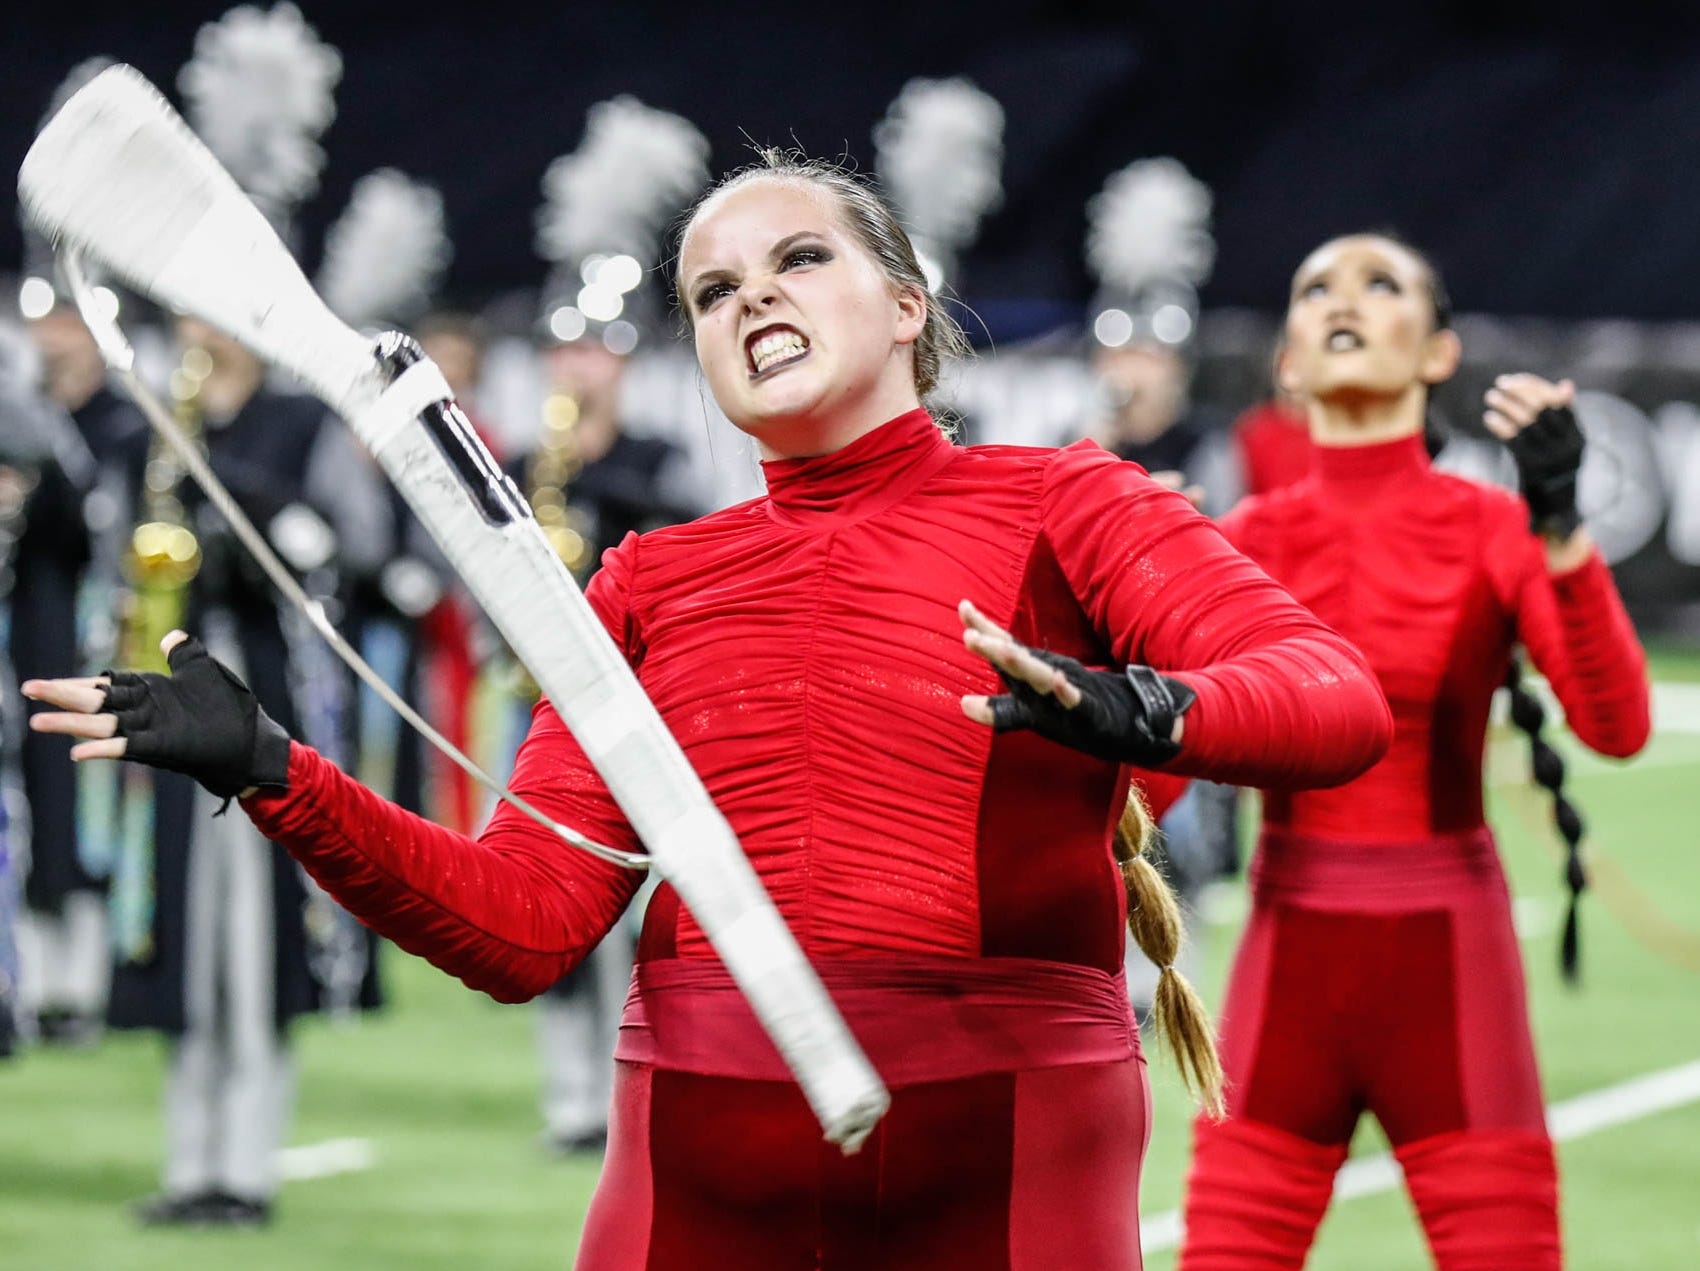 The Lakeland High School band performs during the Bands of America 2018 Grand National Championships, held at Lucas Oil Stadium in Indianapolis on Thursday, Nov. 8, 2018.